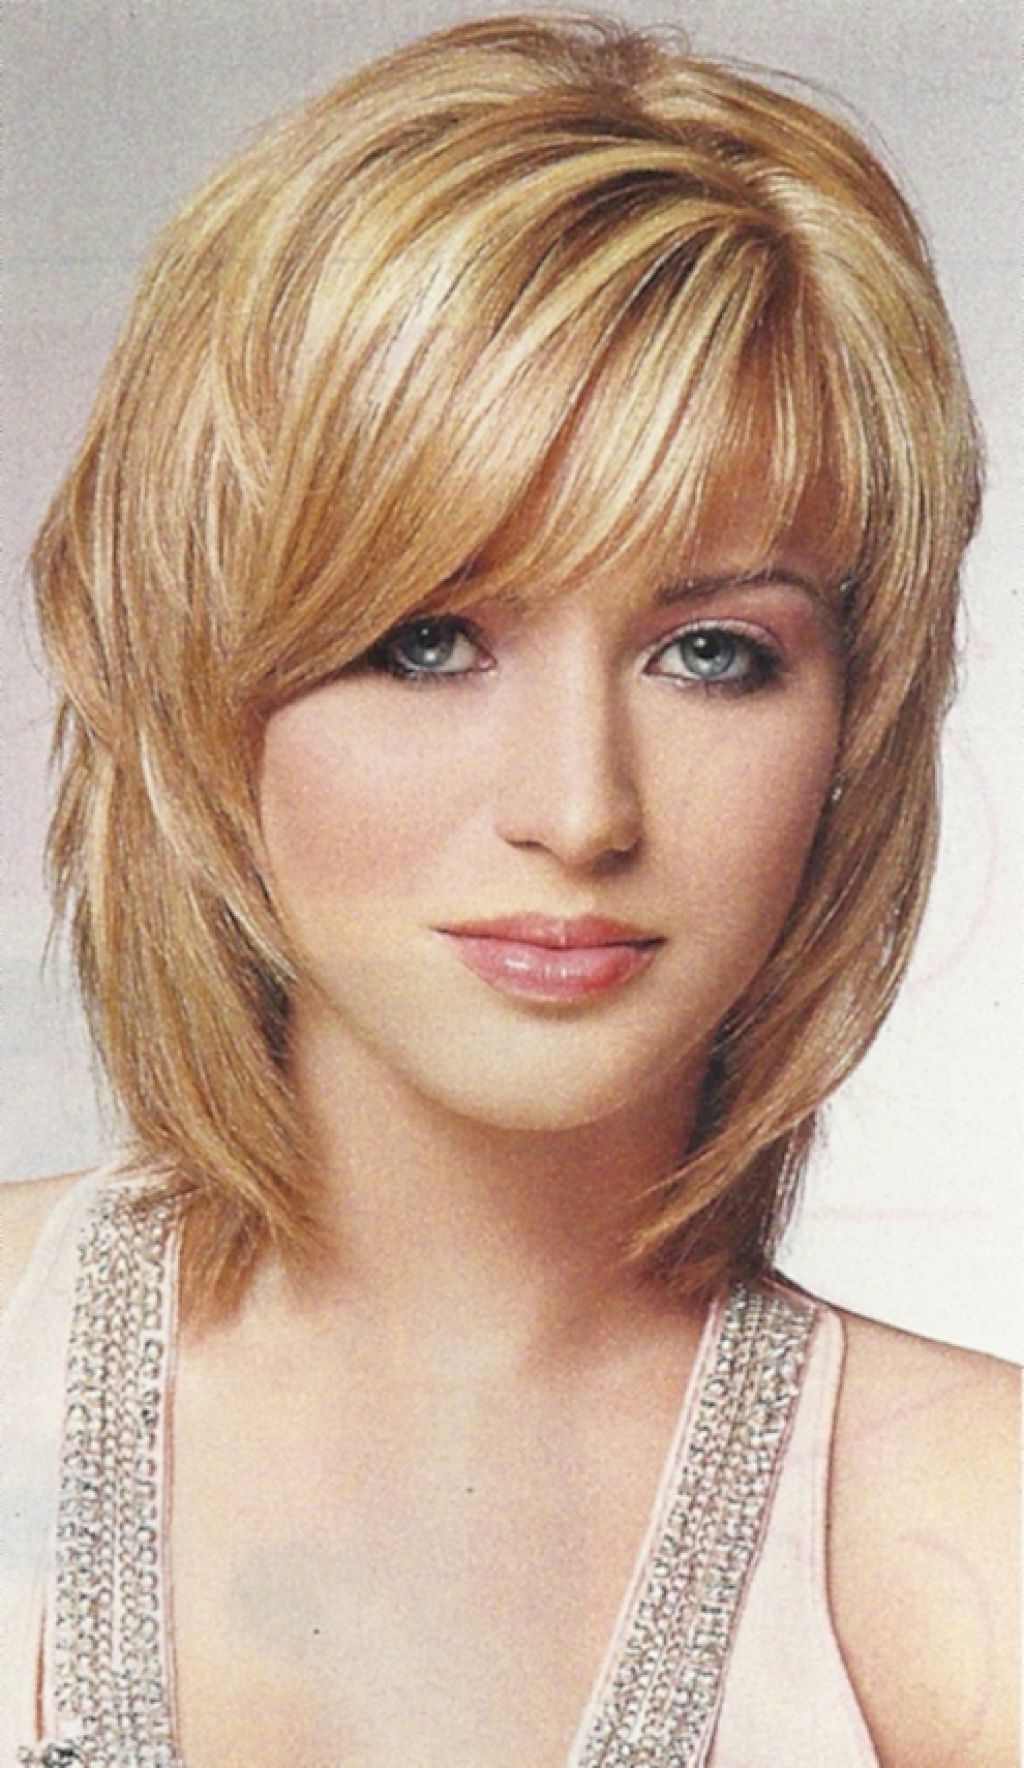 Hairstyle For Medium Short Hair – Hairstyle For Women & Man Within Popular Short To Medium Length Shaggy Hairstyles (View 4 of 15)